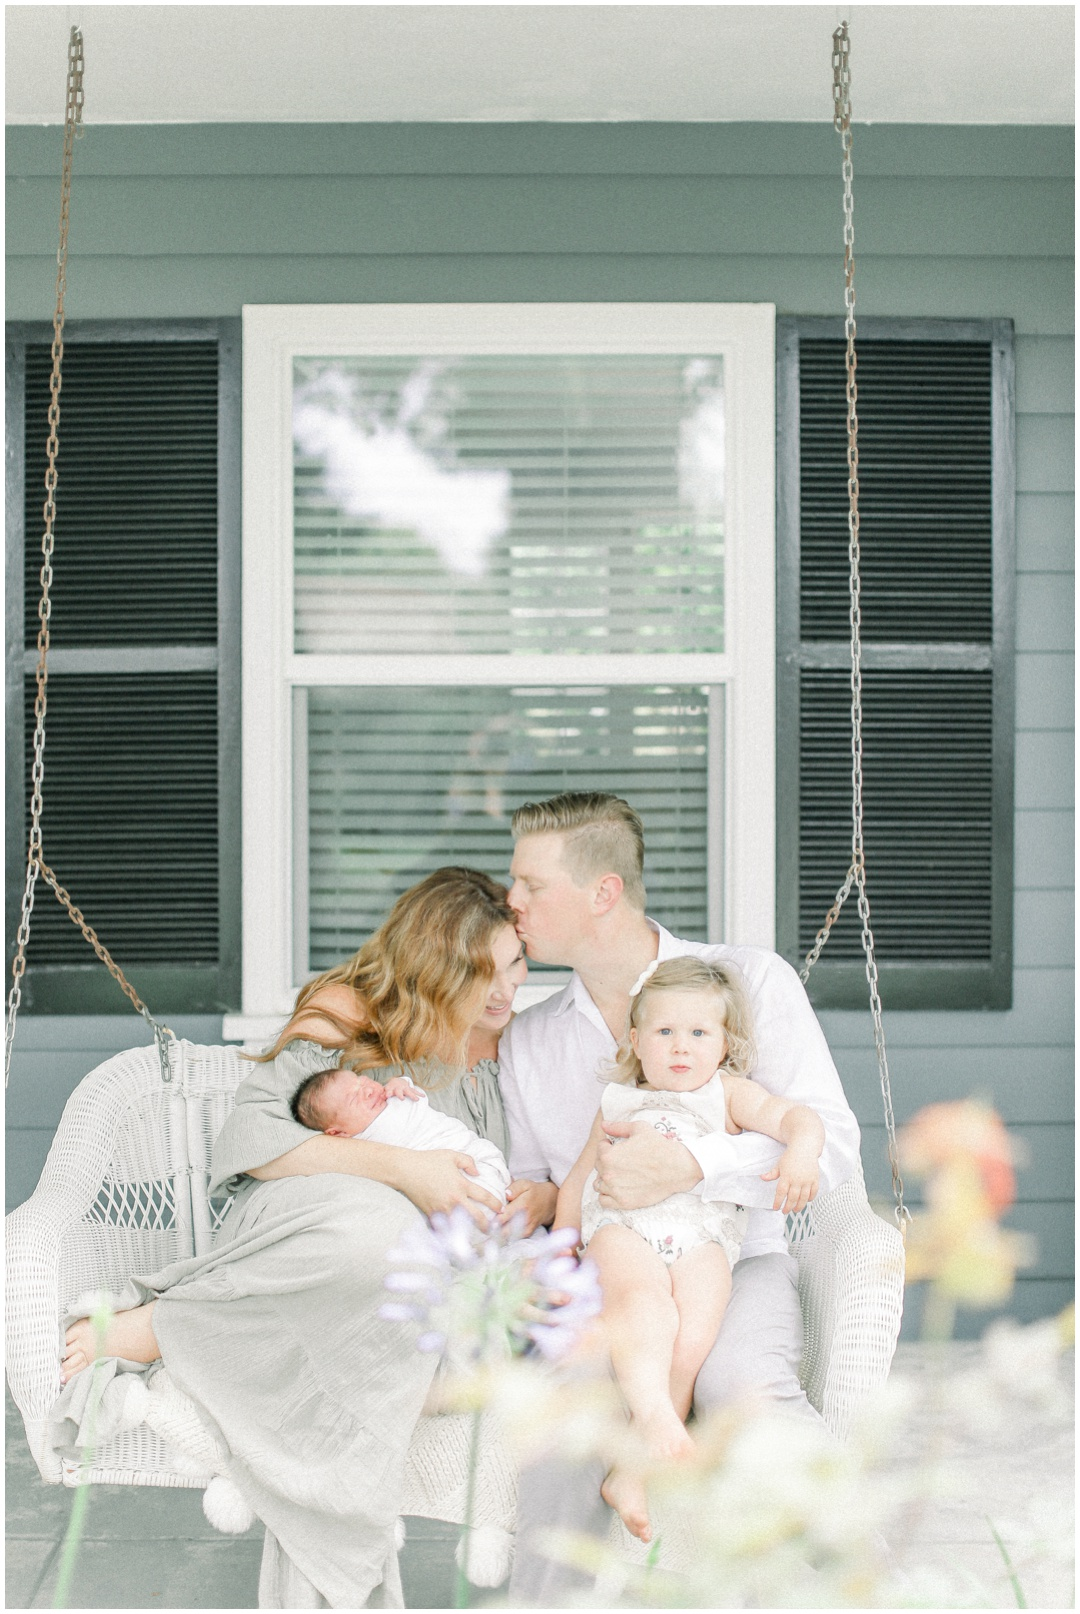 Newport_Beach_Newborn_Light_Airy_Natural_Photographer_Newport_Beach_Photographer_Orange_County_Family_Photographer_Cori_Kleckner_Photography_Newport_Beach_Photographer_Blaire_Baker_Brett_Baker_Caroline_Baker__3915.jpg